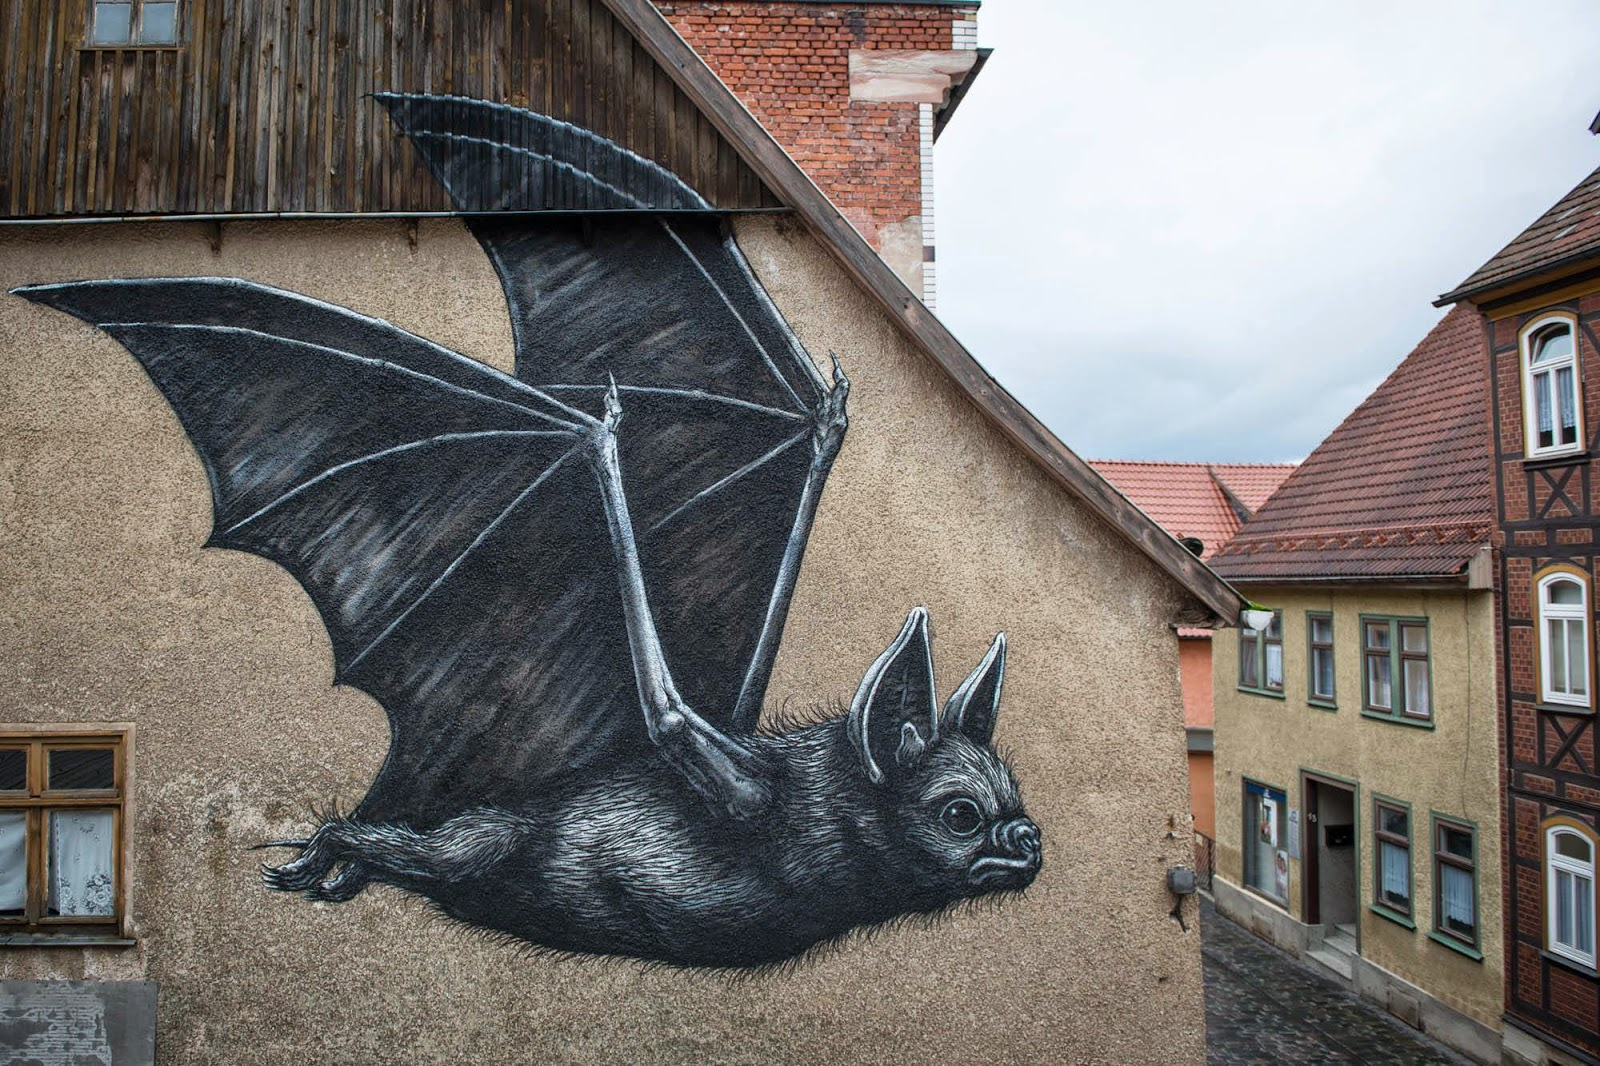 ROA for the WallCome project to paint on the streets of Schmalkalden in Germany. Photo via StreetArtNews.